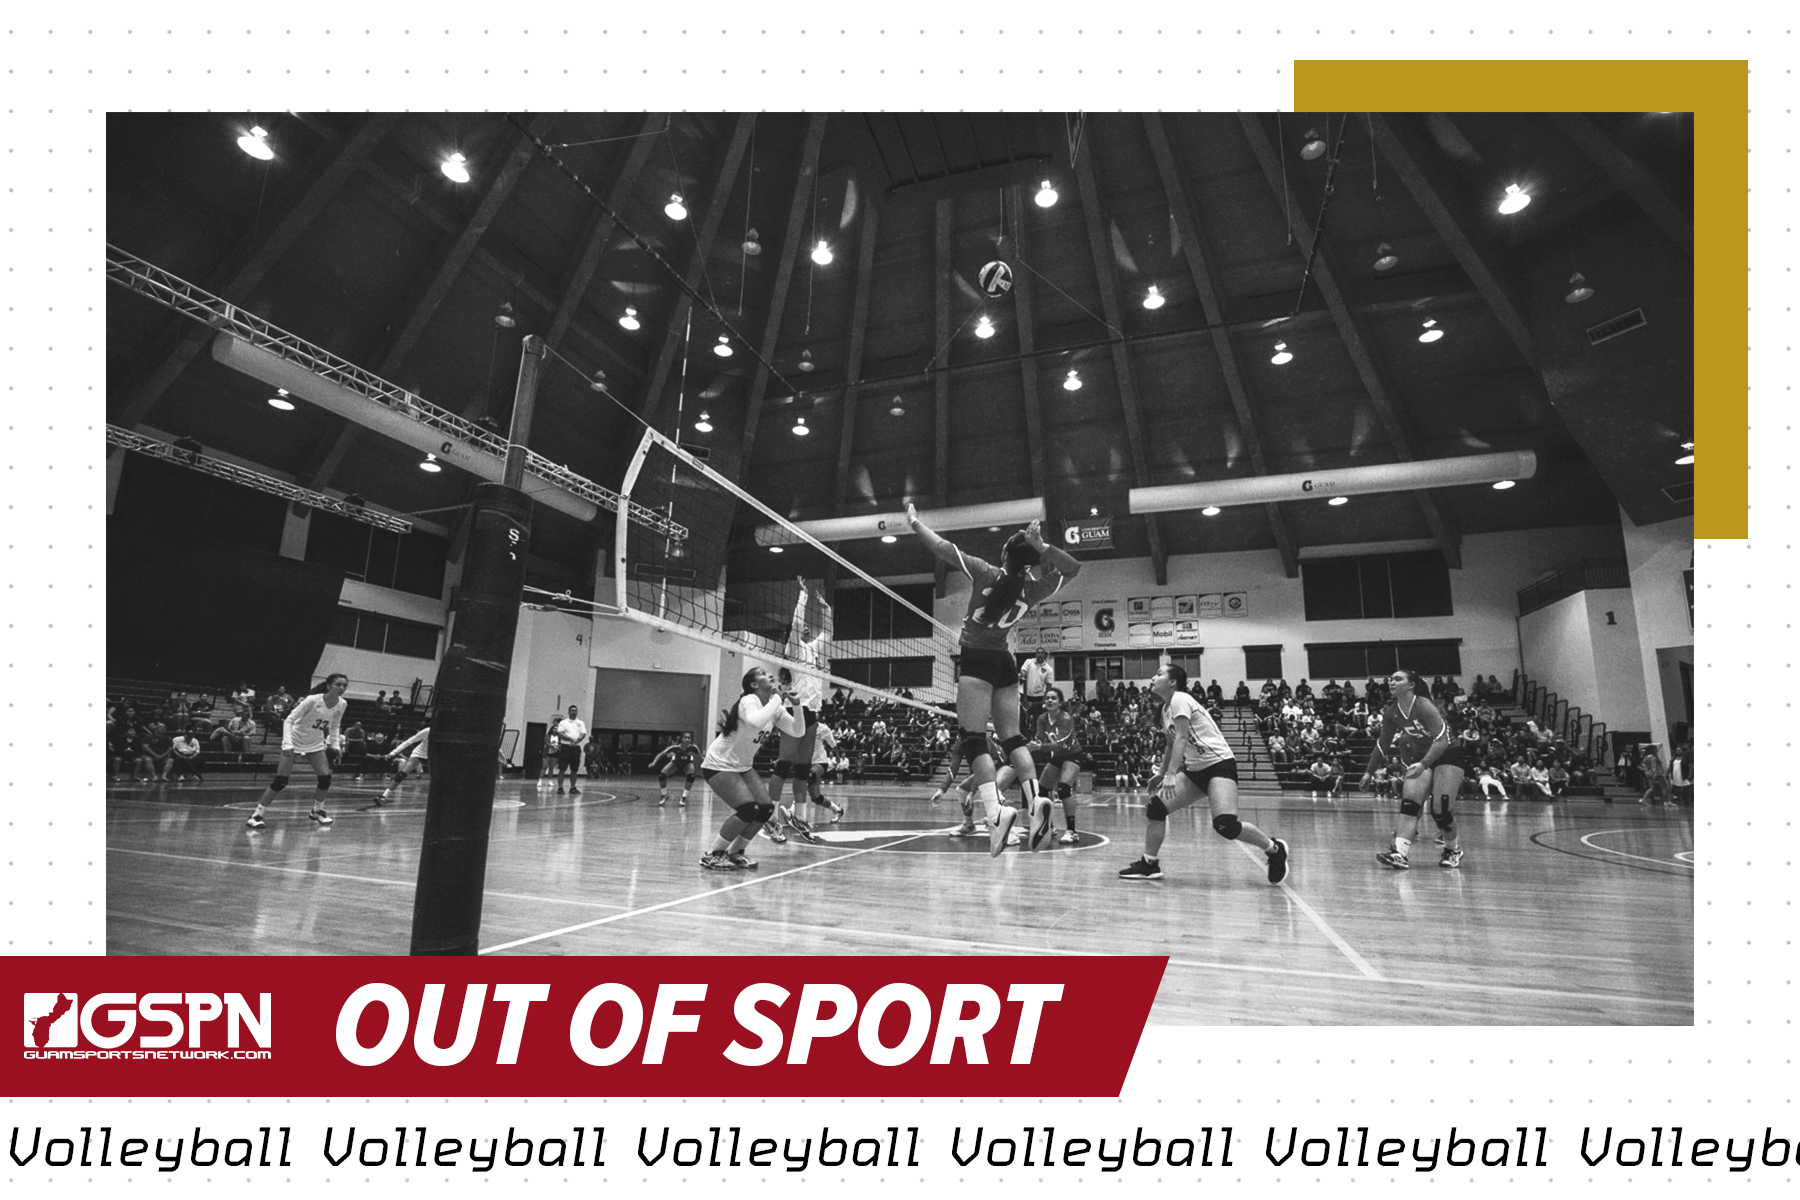 Out_of_Sport_Volleyball